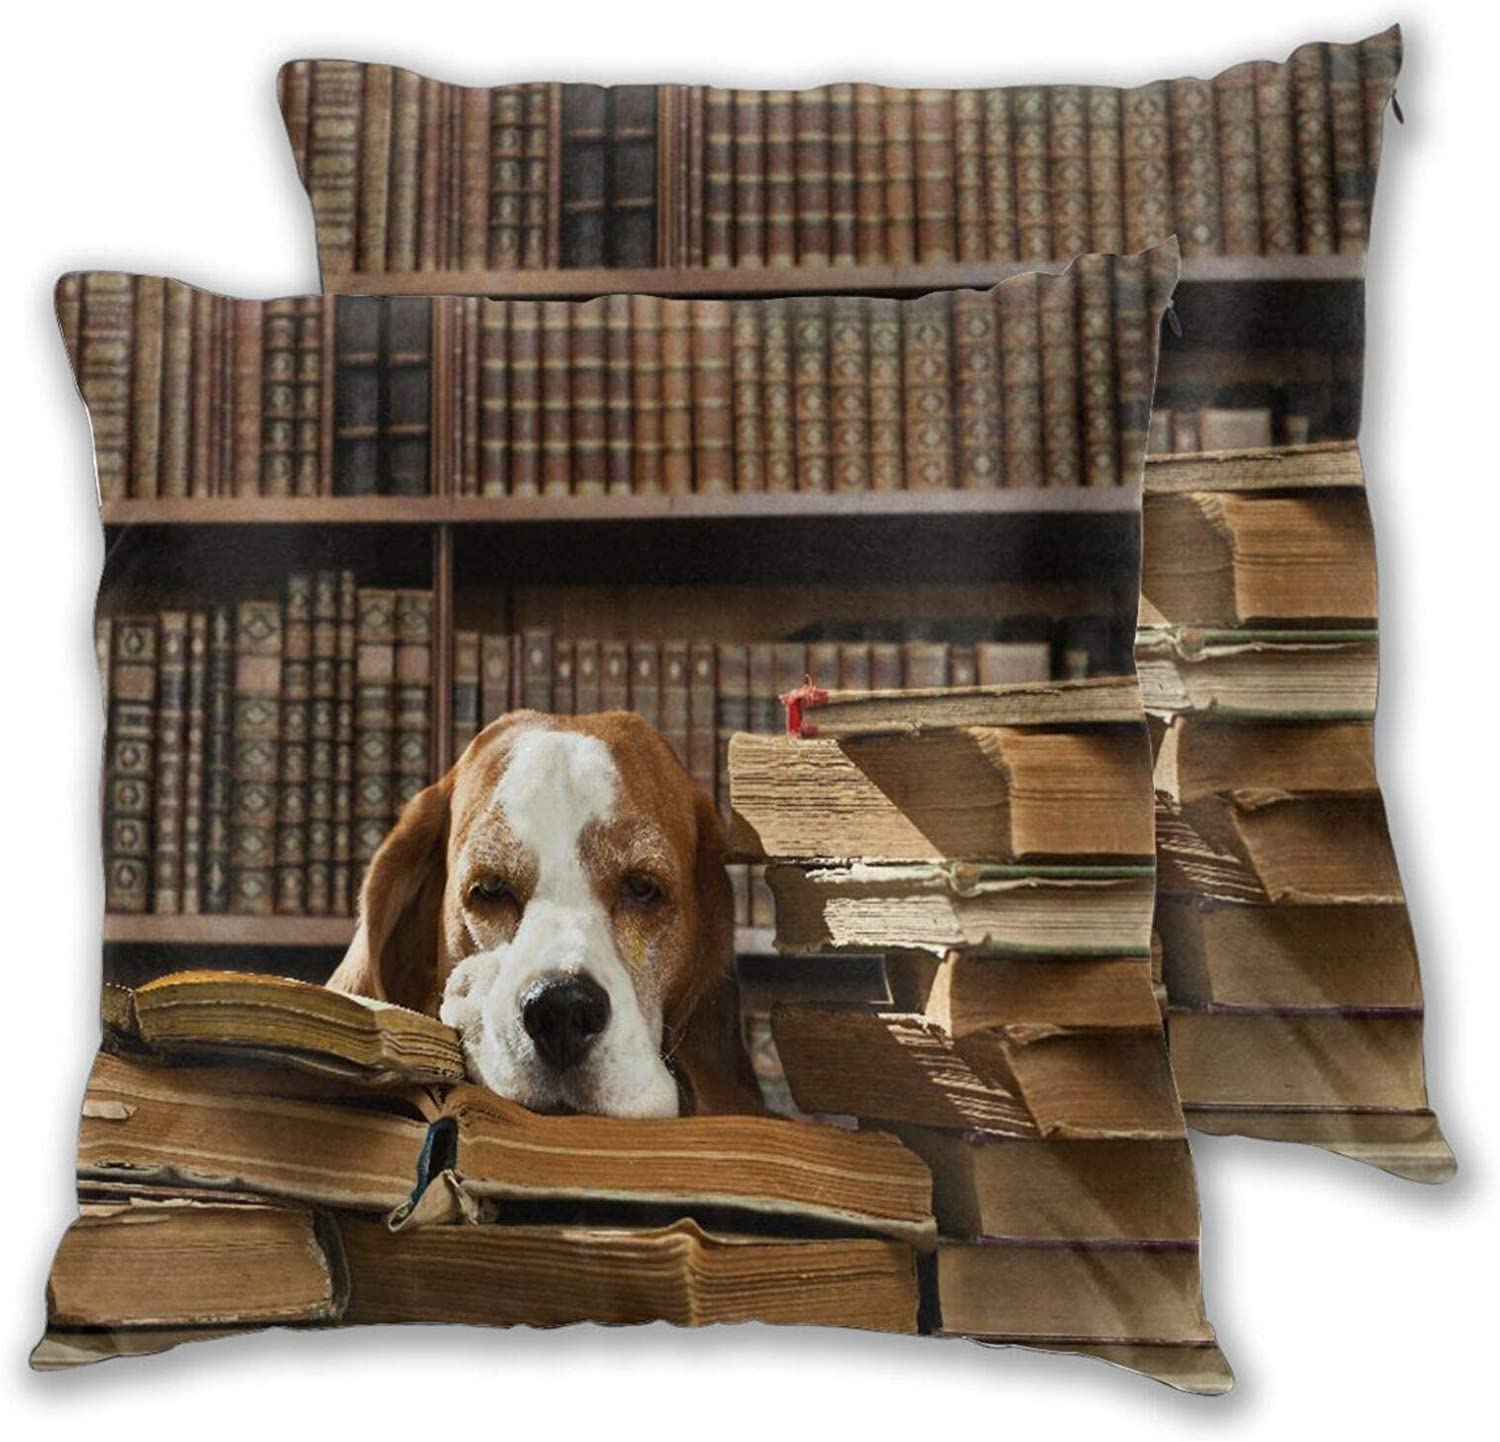 TISAGUER Throw Pillow Covers Set of 2 Dog T Super special price Smart in OFFer Thinks Very